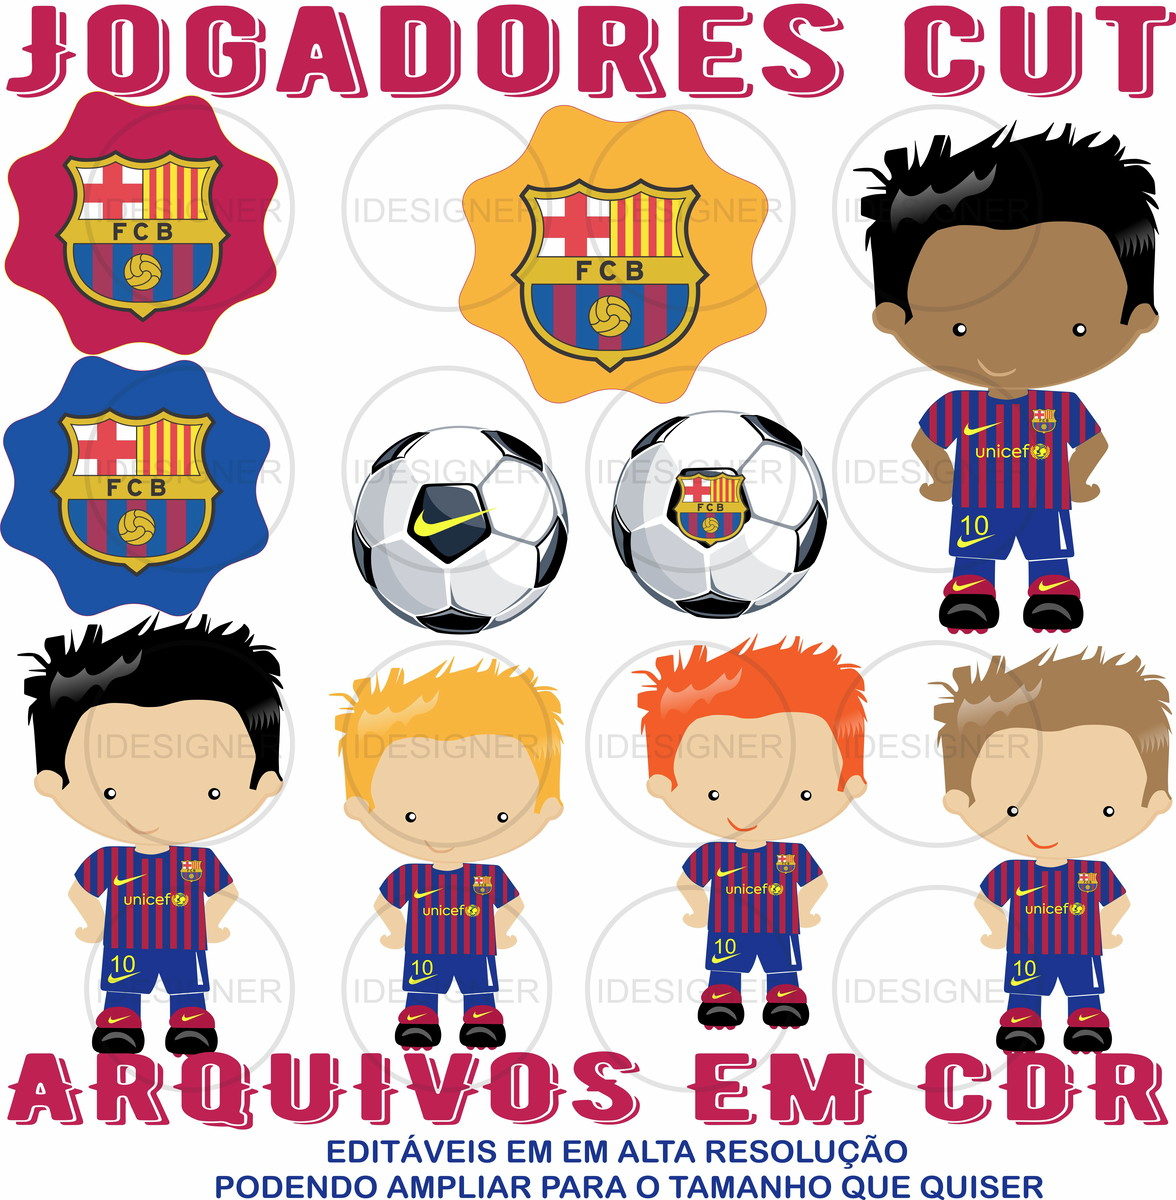 Kit Digital Barcelona Cute ARQUIVOS EM CDR(COREL DRAW)EDITÁV no Elo7 ... 702c25721da82